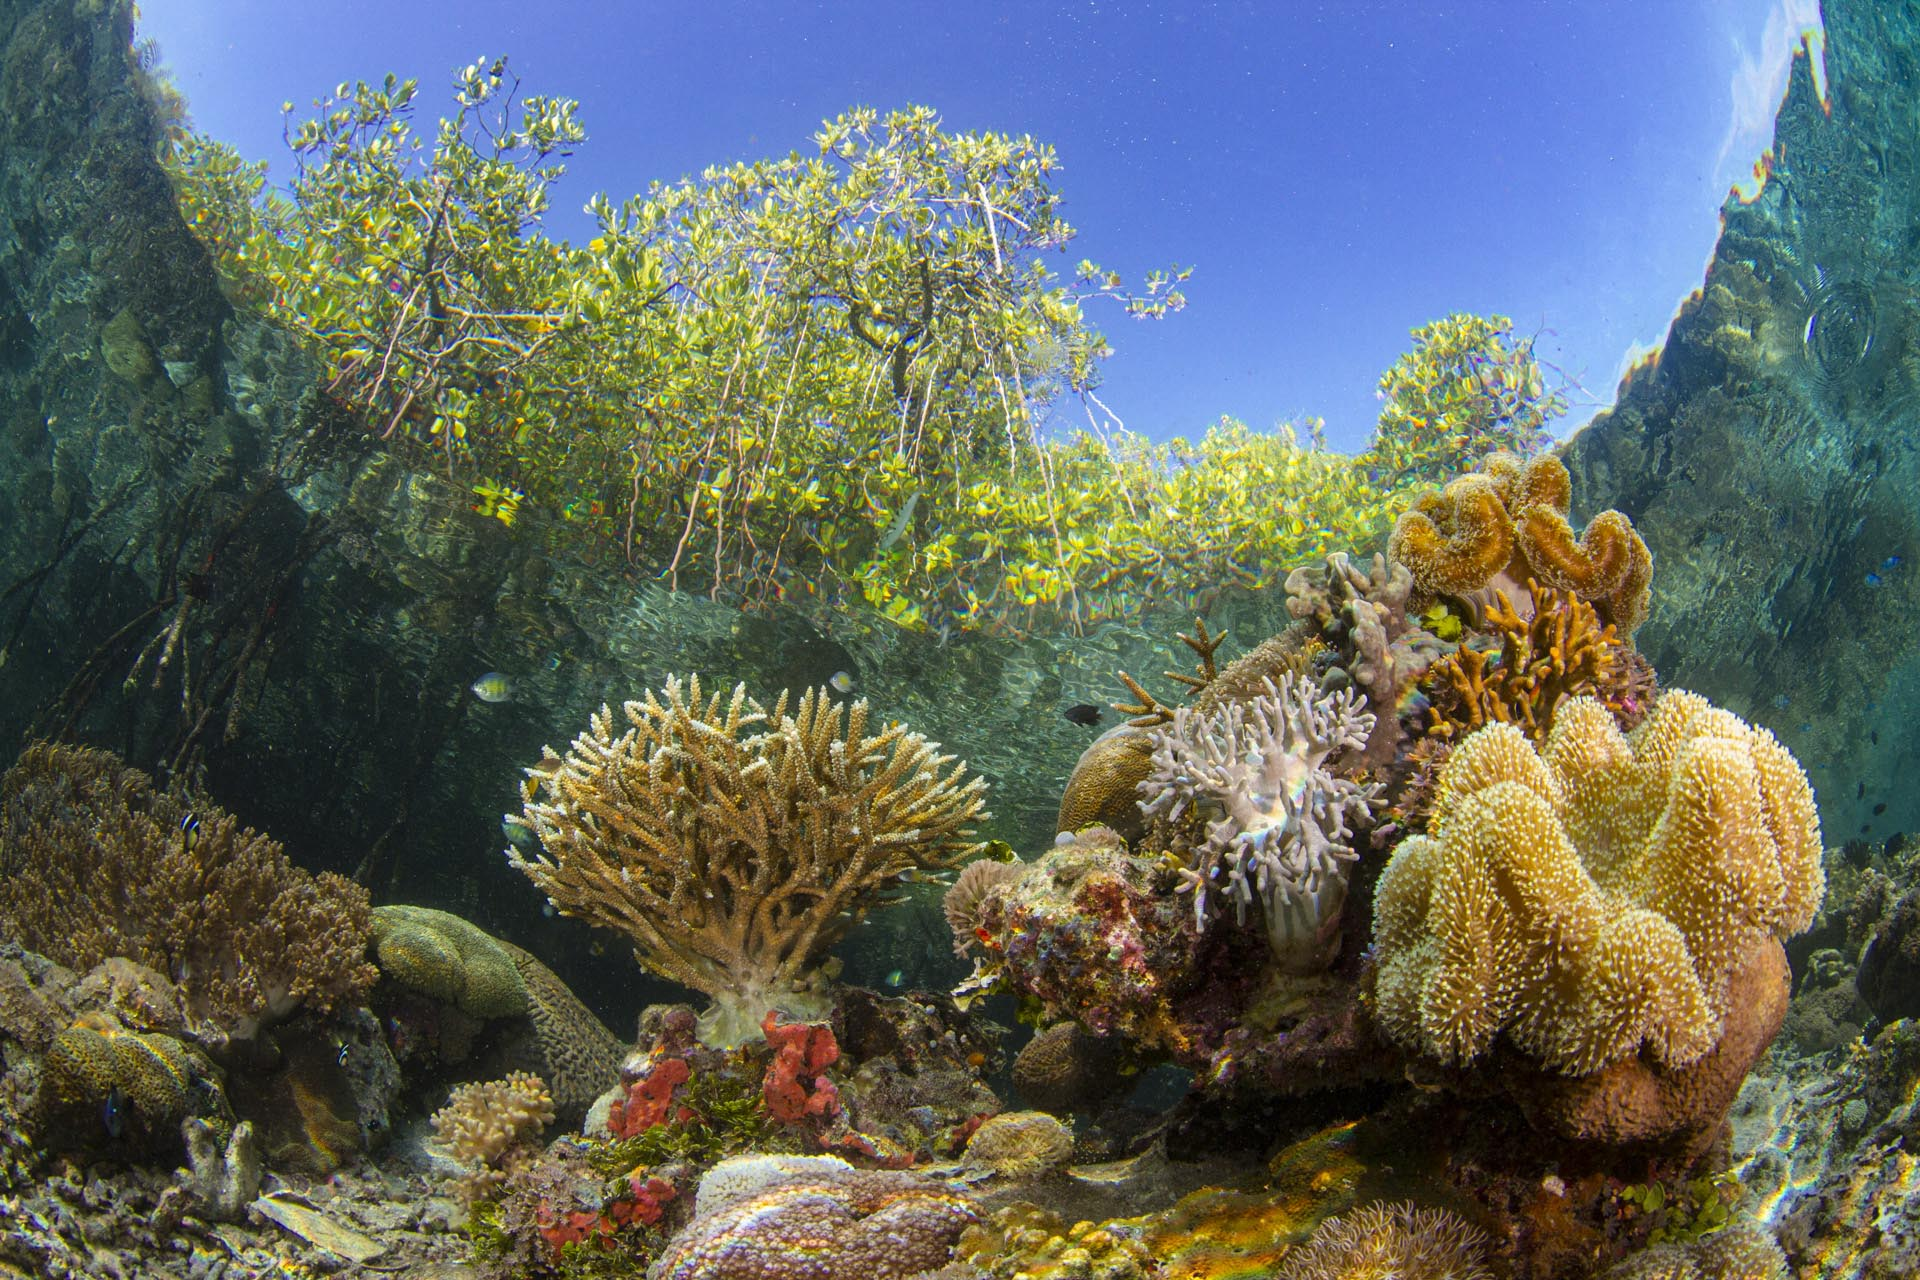 mangrove canopy visible above coral reef